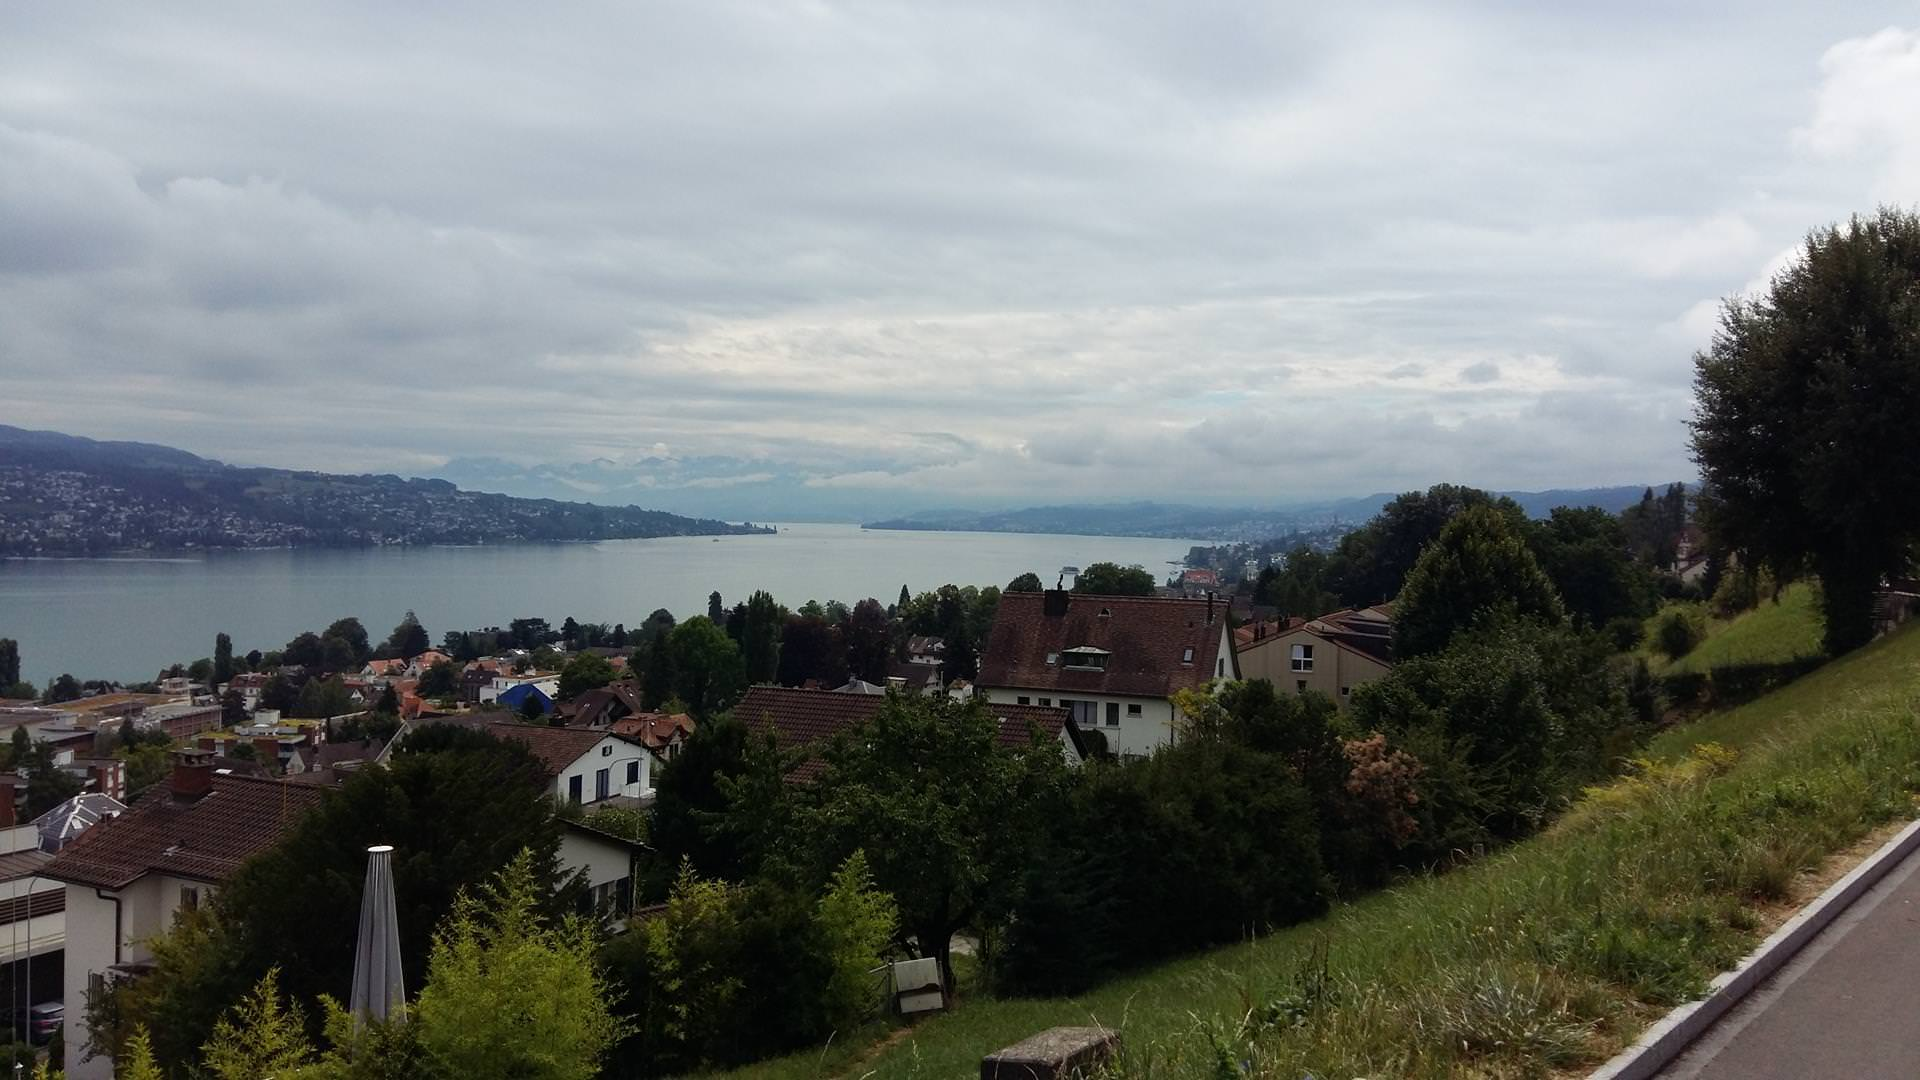 The view from Kilchberg, over looking Lake Zurich.